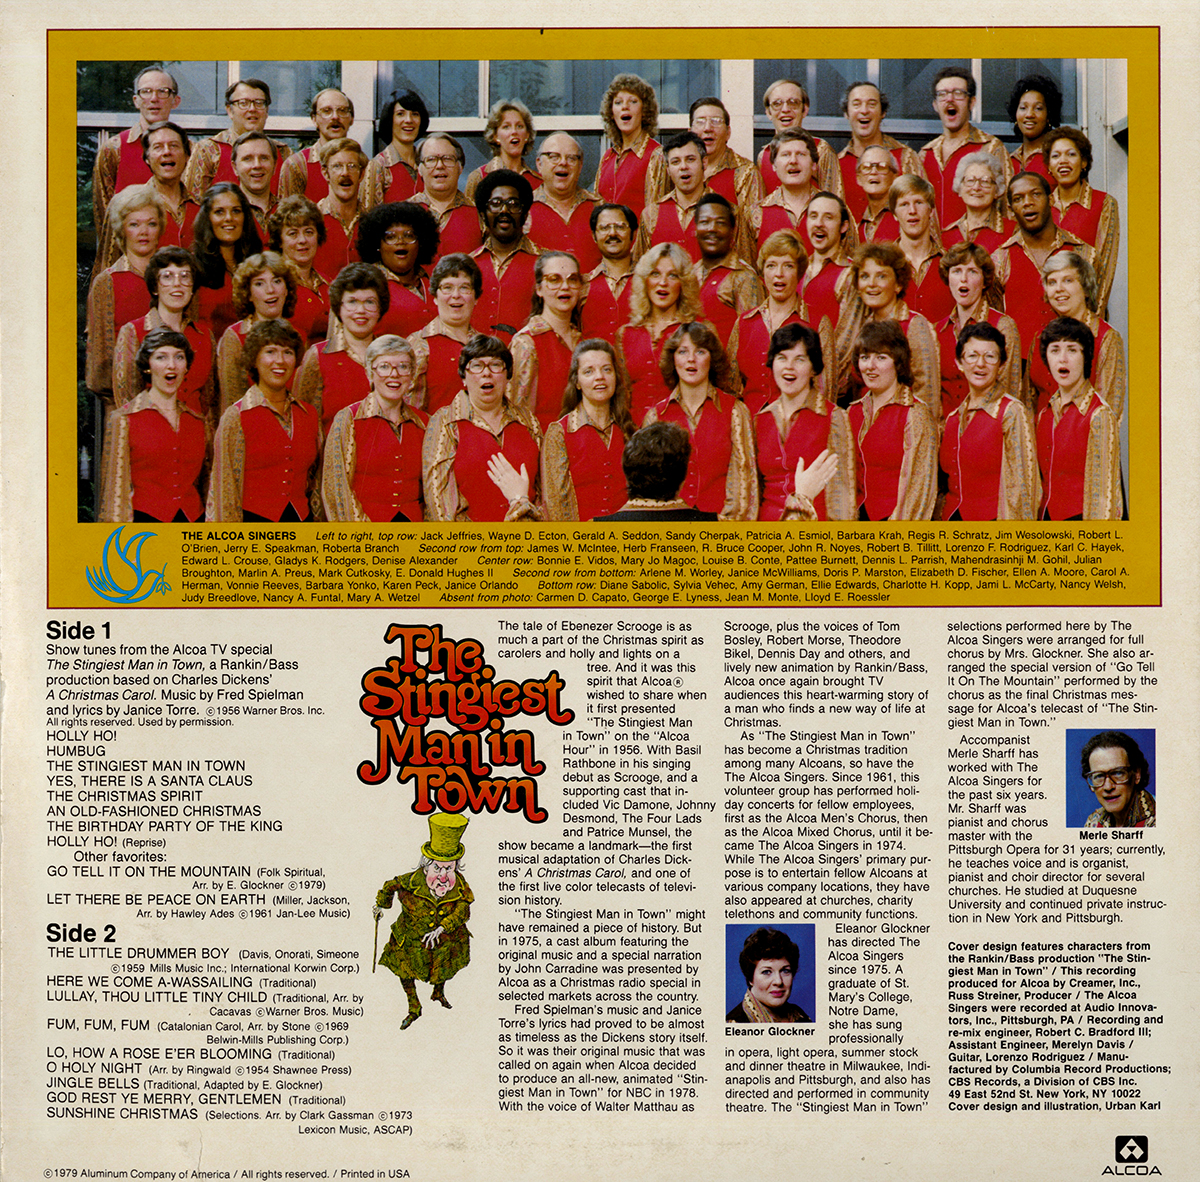 The Alcoa Singers pictured on the back of the Old-Fashioned Christmas album cover, 1979.